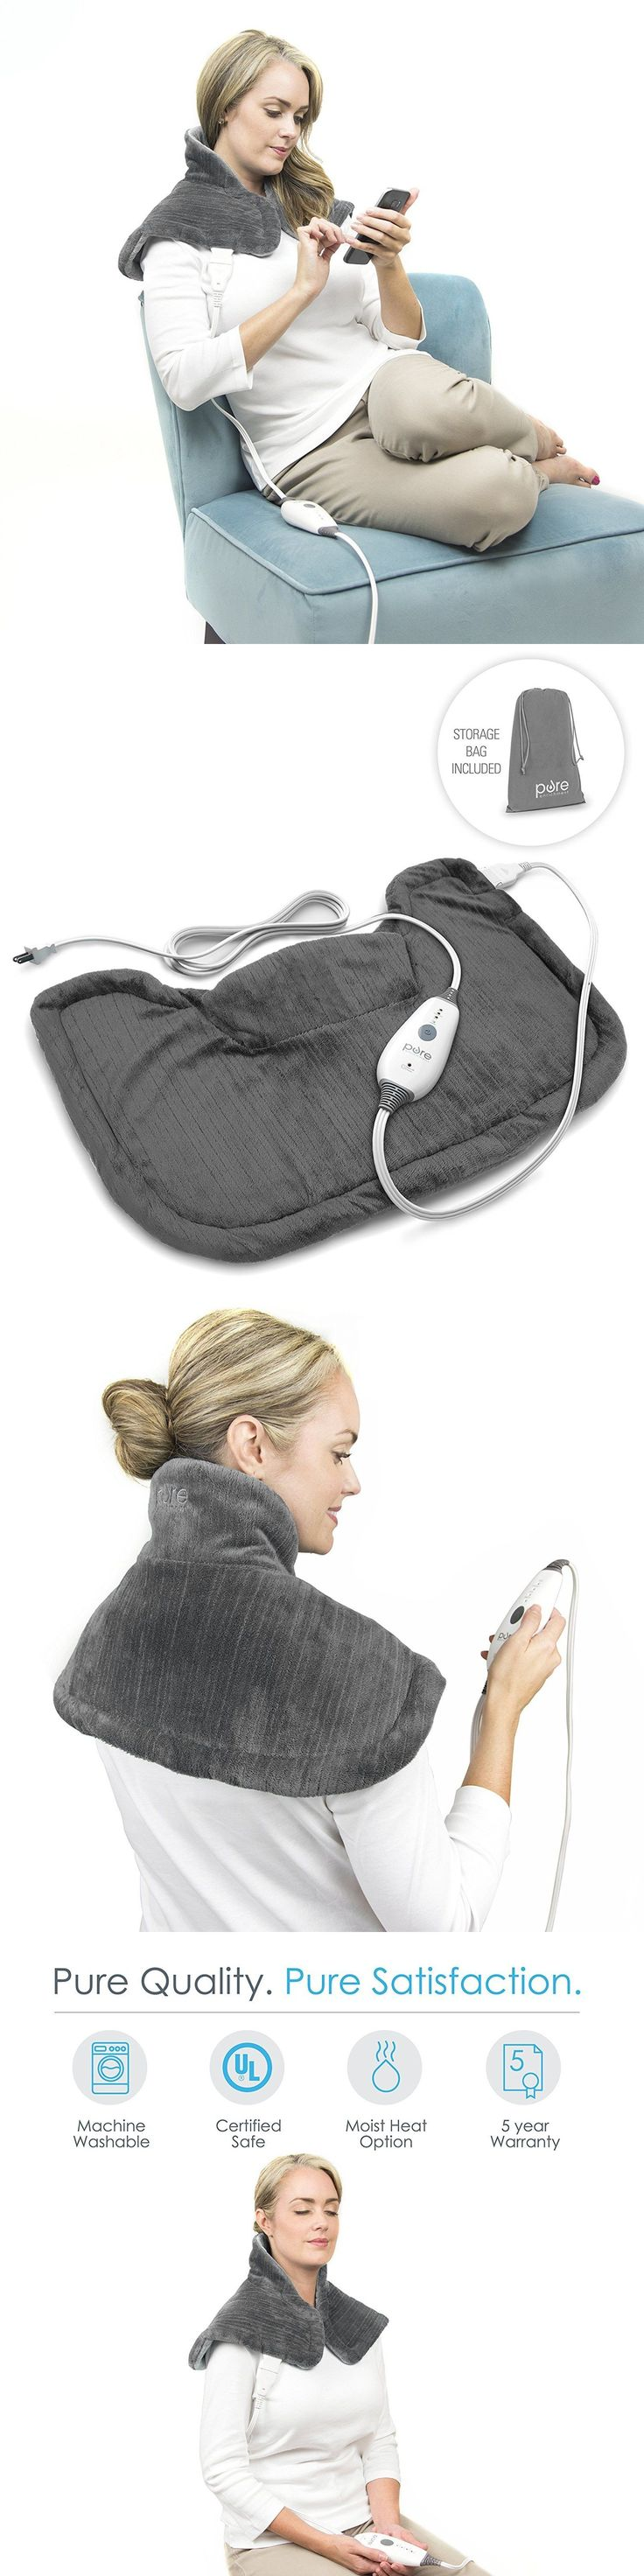 Cold and Hot Packs and Wraps: Neck Shoulder Heating Pad Pain Relief Heat Electric Back Relaxing Therapy -> BUY IT NOW ONLY: $39.28 on eBay!